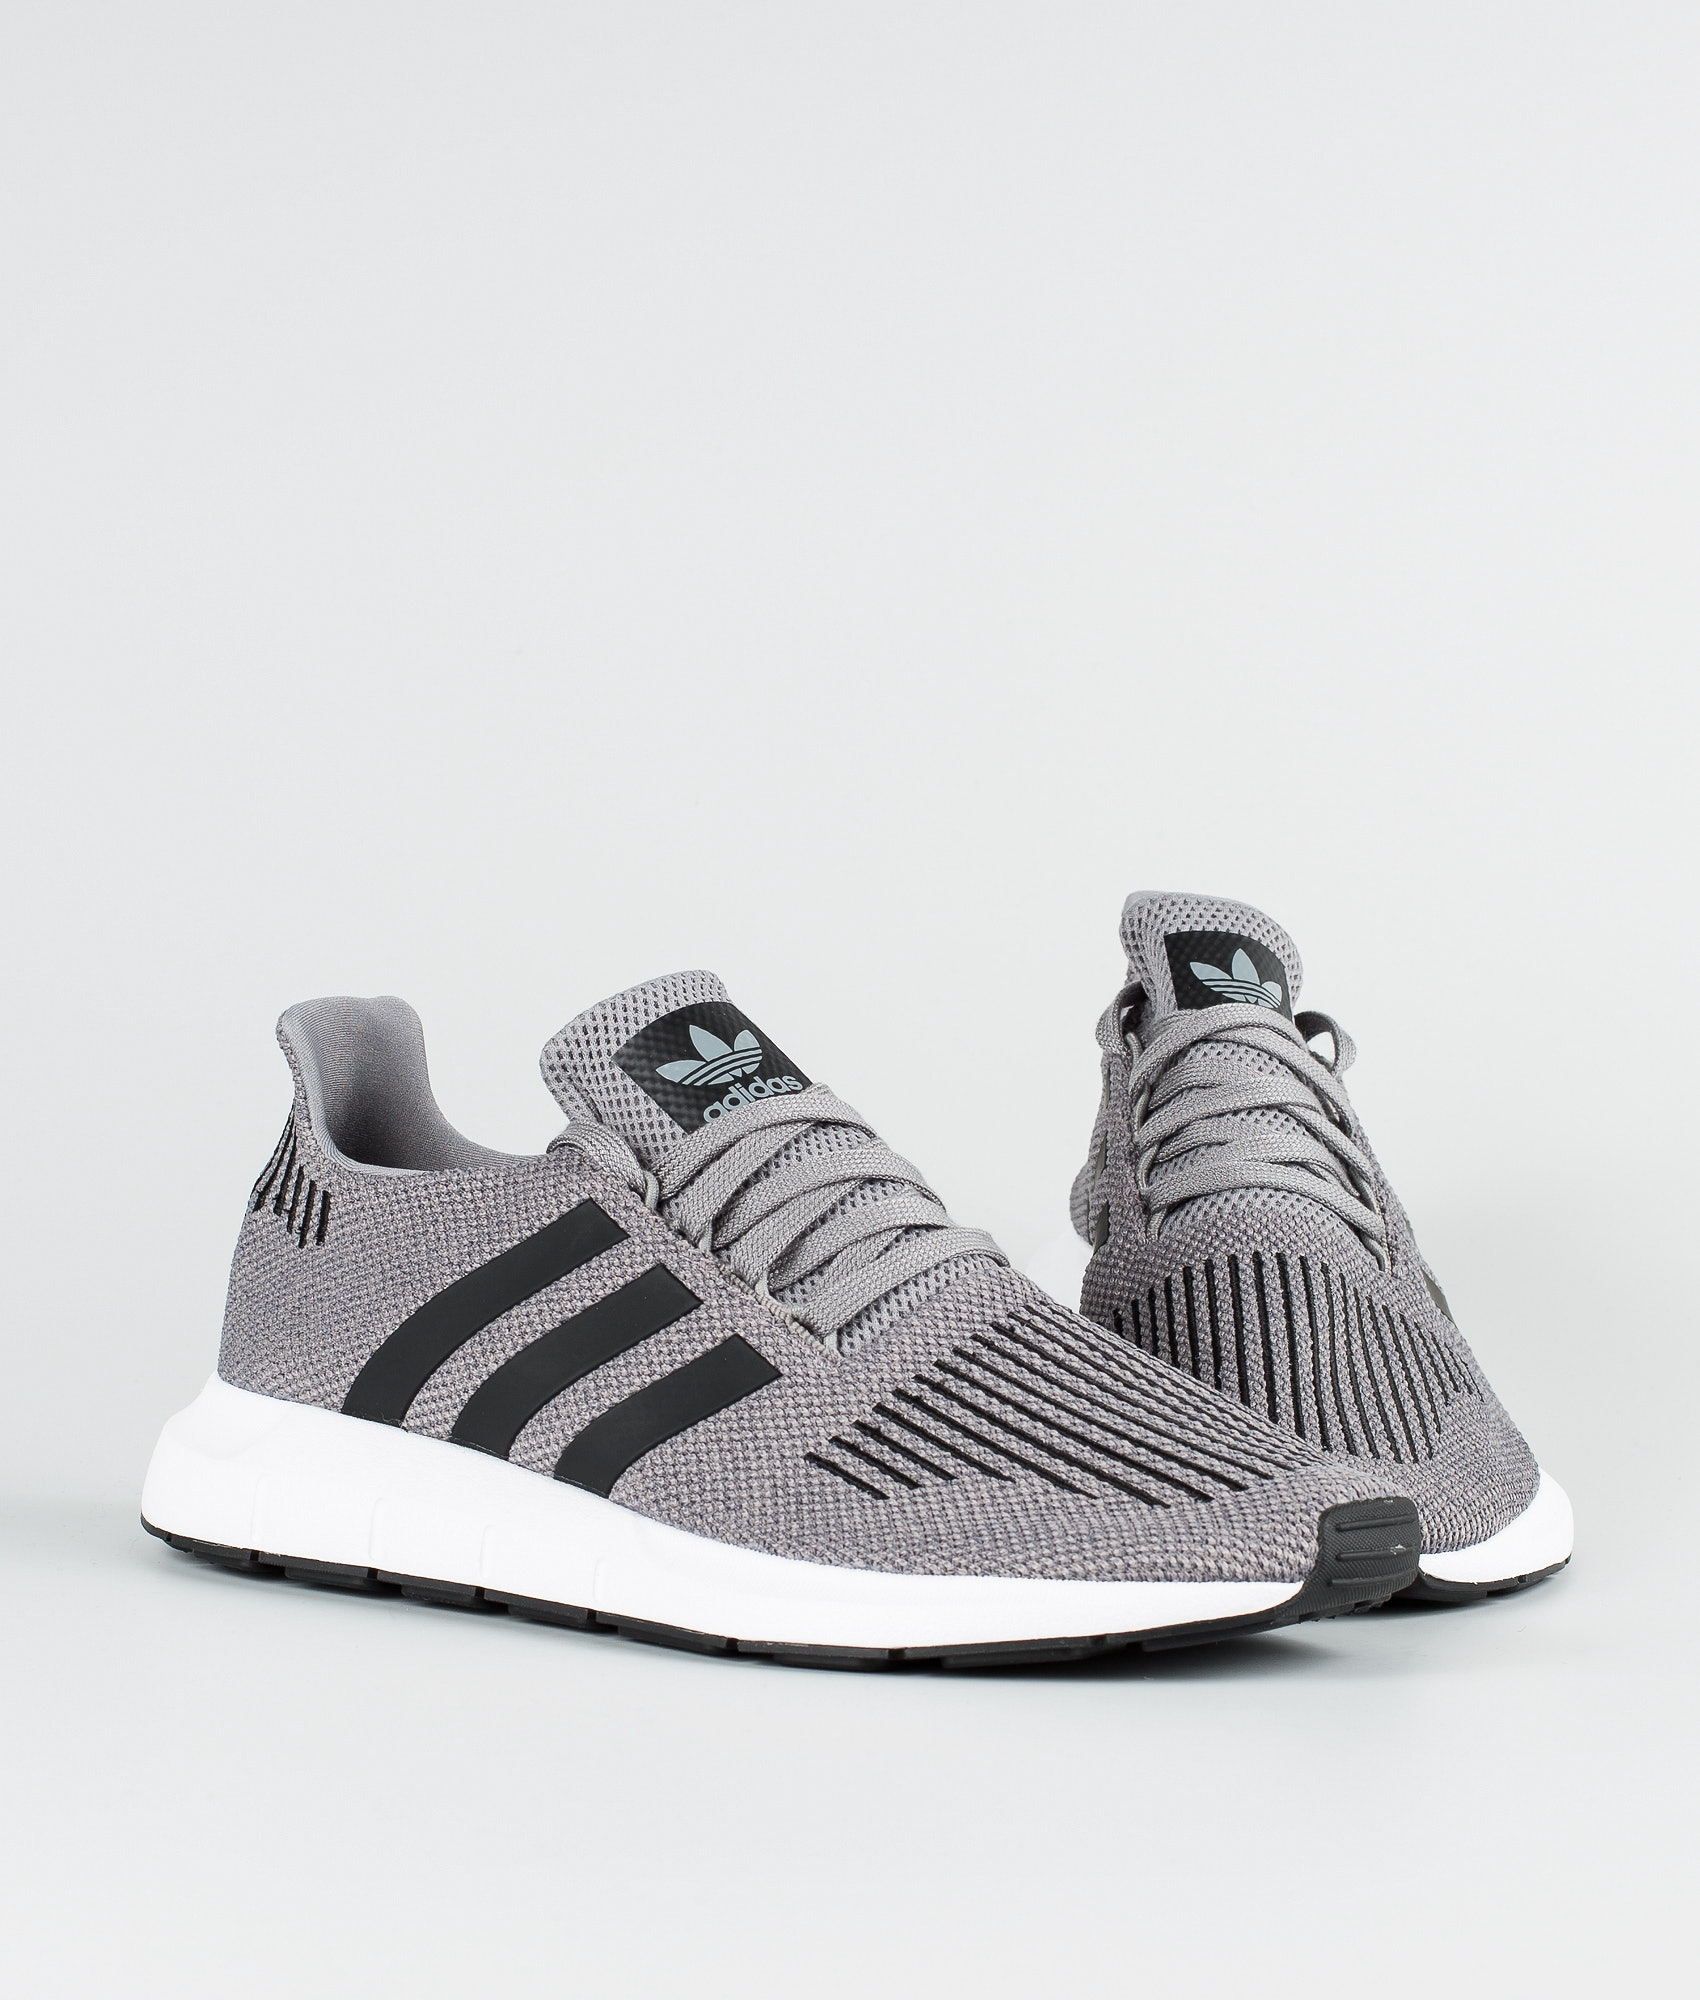 detailed look 4d829 7be5c Adidas Originals Swift Run Shoes Grey Heather/Core Black/Medium Grey Heather